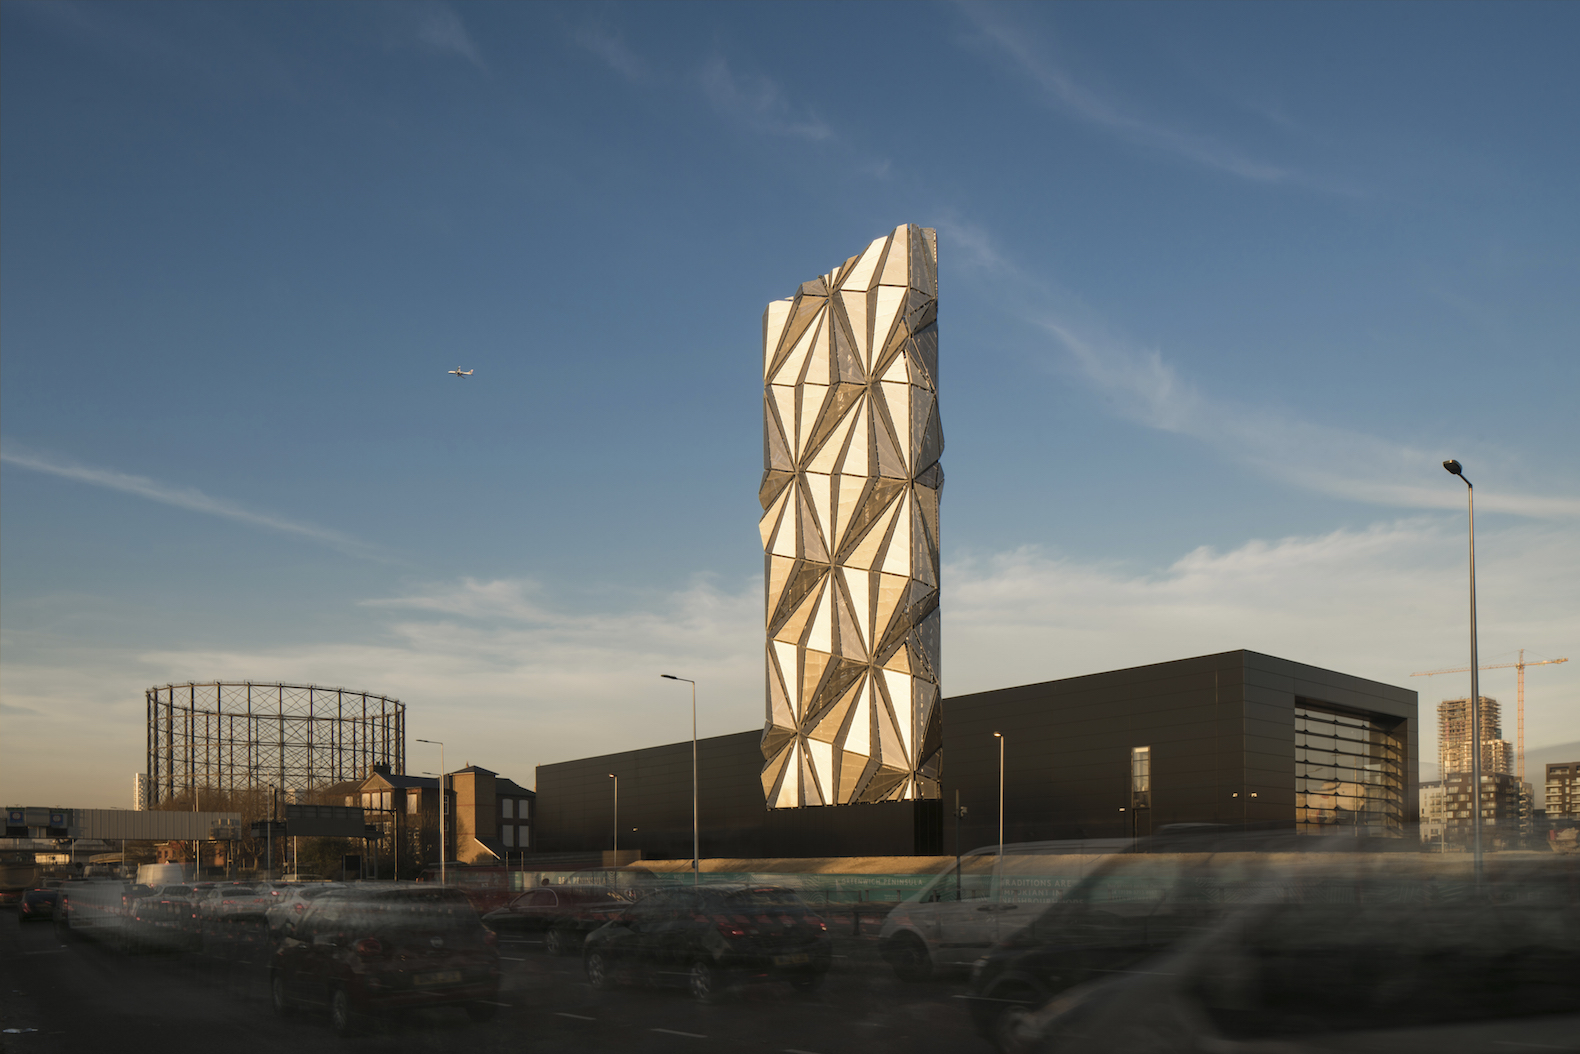 Greenwich Peninsula Low Carbon Energy Centre by C.F. Møller Architects, Conrad Shawcross energy center, The Optic Cloak by Conrad Shawcross, combined heat and power center, combined heat and power in Greenwich Peninsula,